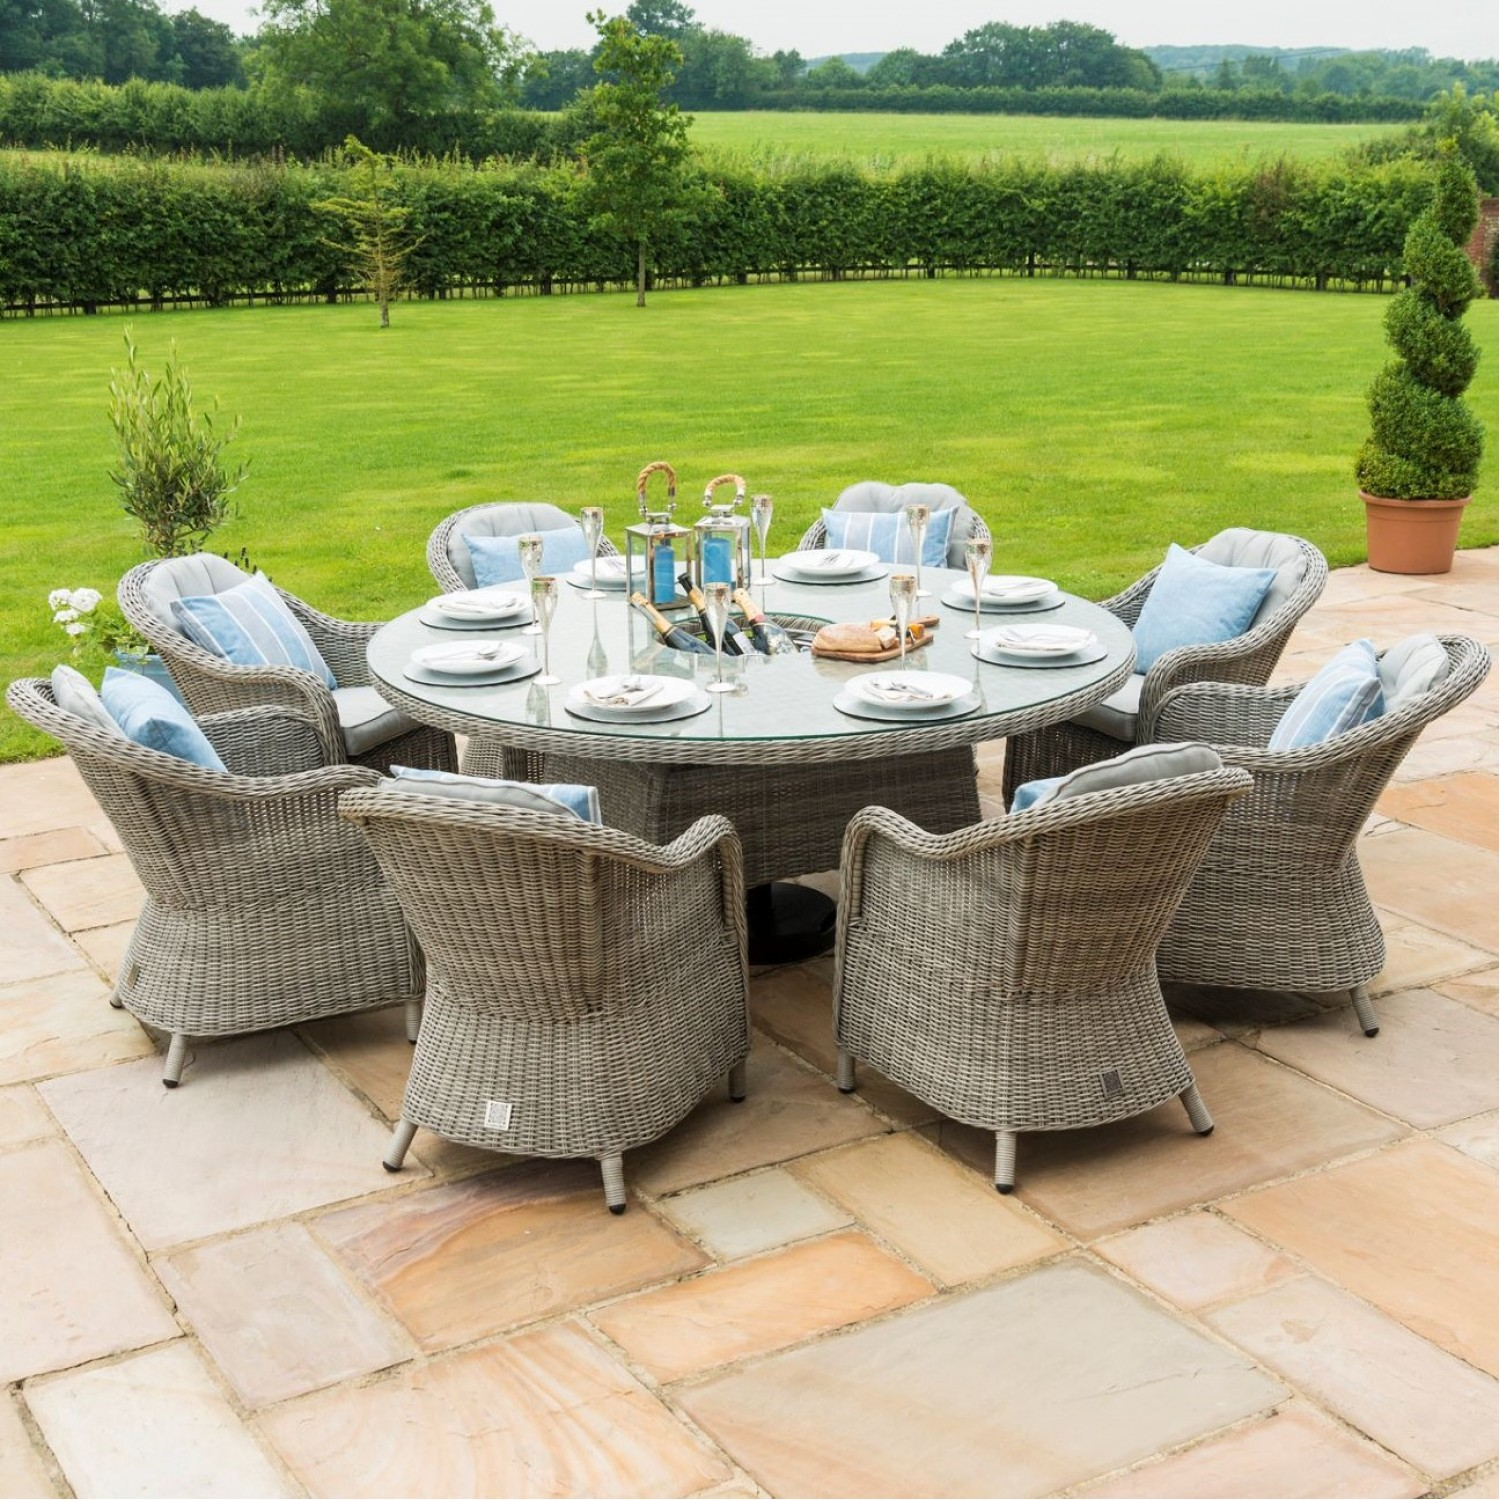 Maze Rattan Garden Furniture Oxford 8 Seater Round Ice Bucket Table And 8 Rounded Chairs Lazy Susan Oak Furniture House